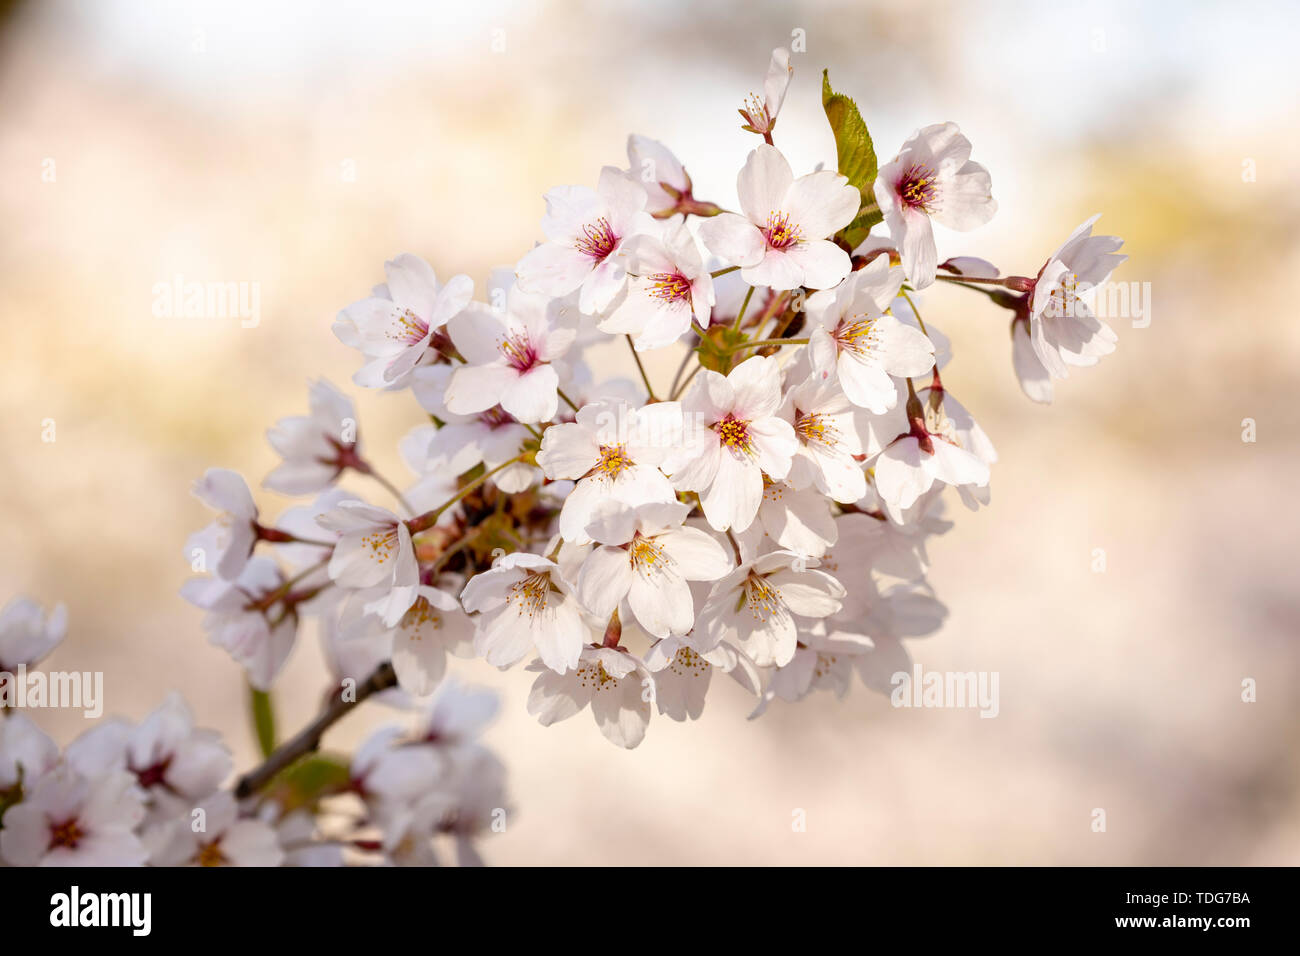 A branch of white cherry blossoms in soft sunlight. Stock Photo